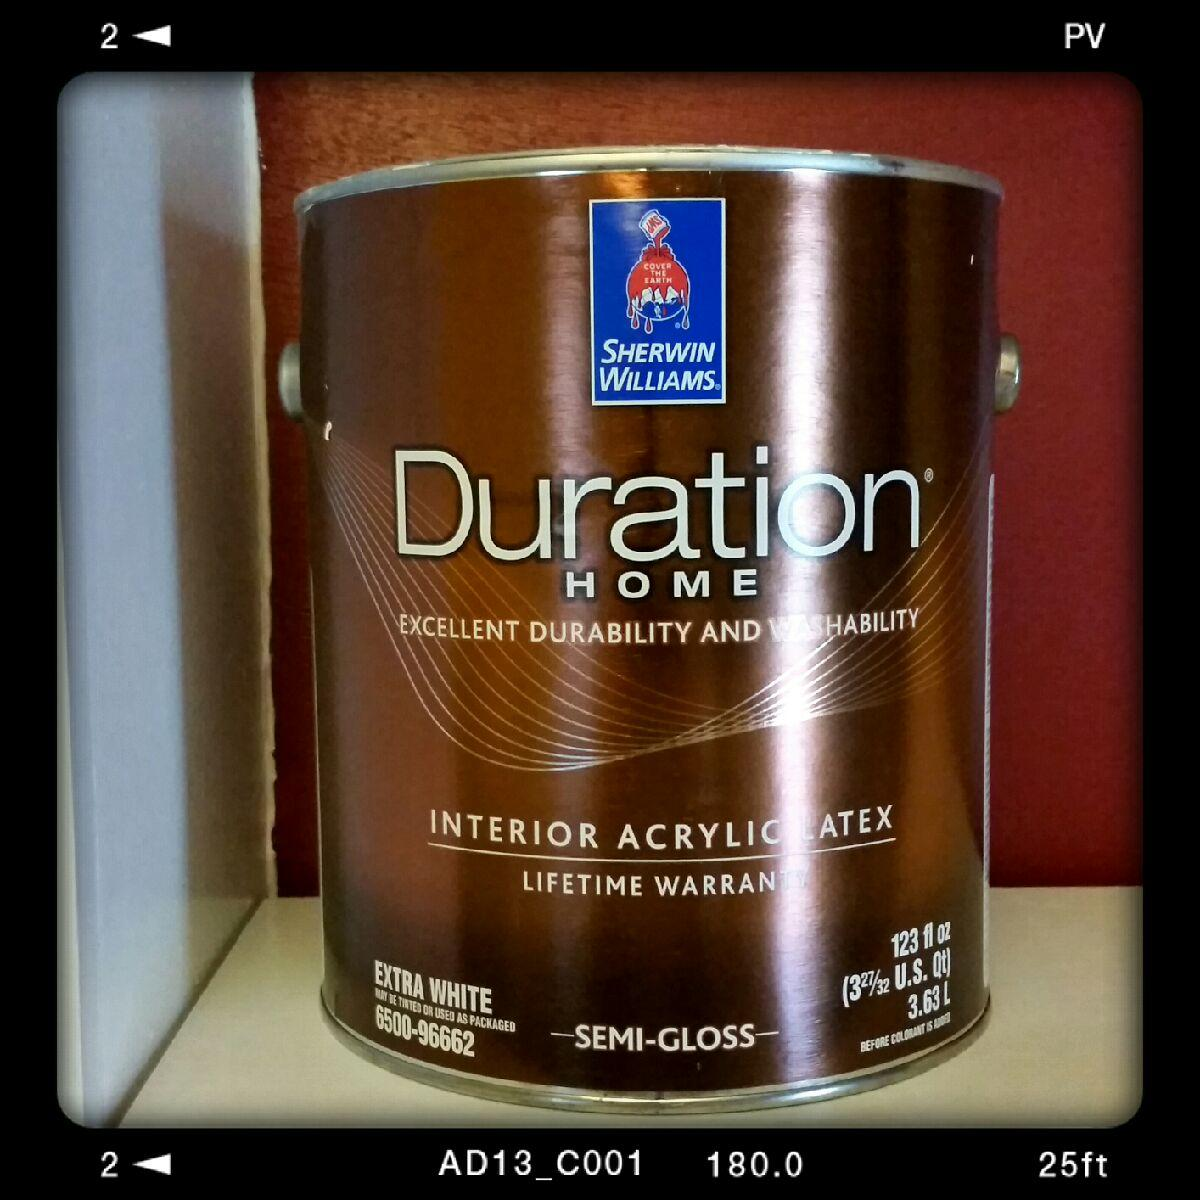 Splendid Sherwin Williams Duration Just Add Most Trusted Paints Diy Daily Use Just Add Sherwin Williams Duration Interior Sherwin Williams Duration Dry Time Just Add Paint houzz-02 Sherwin Williams Duration